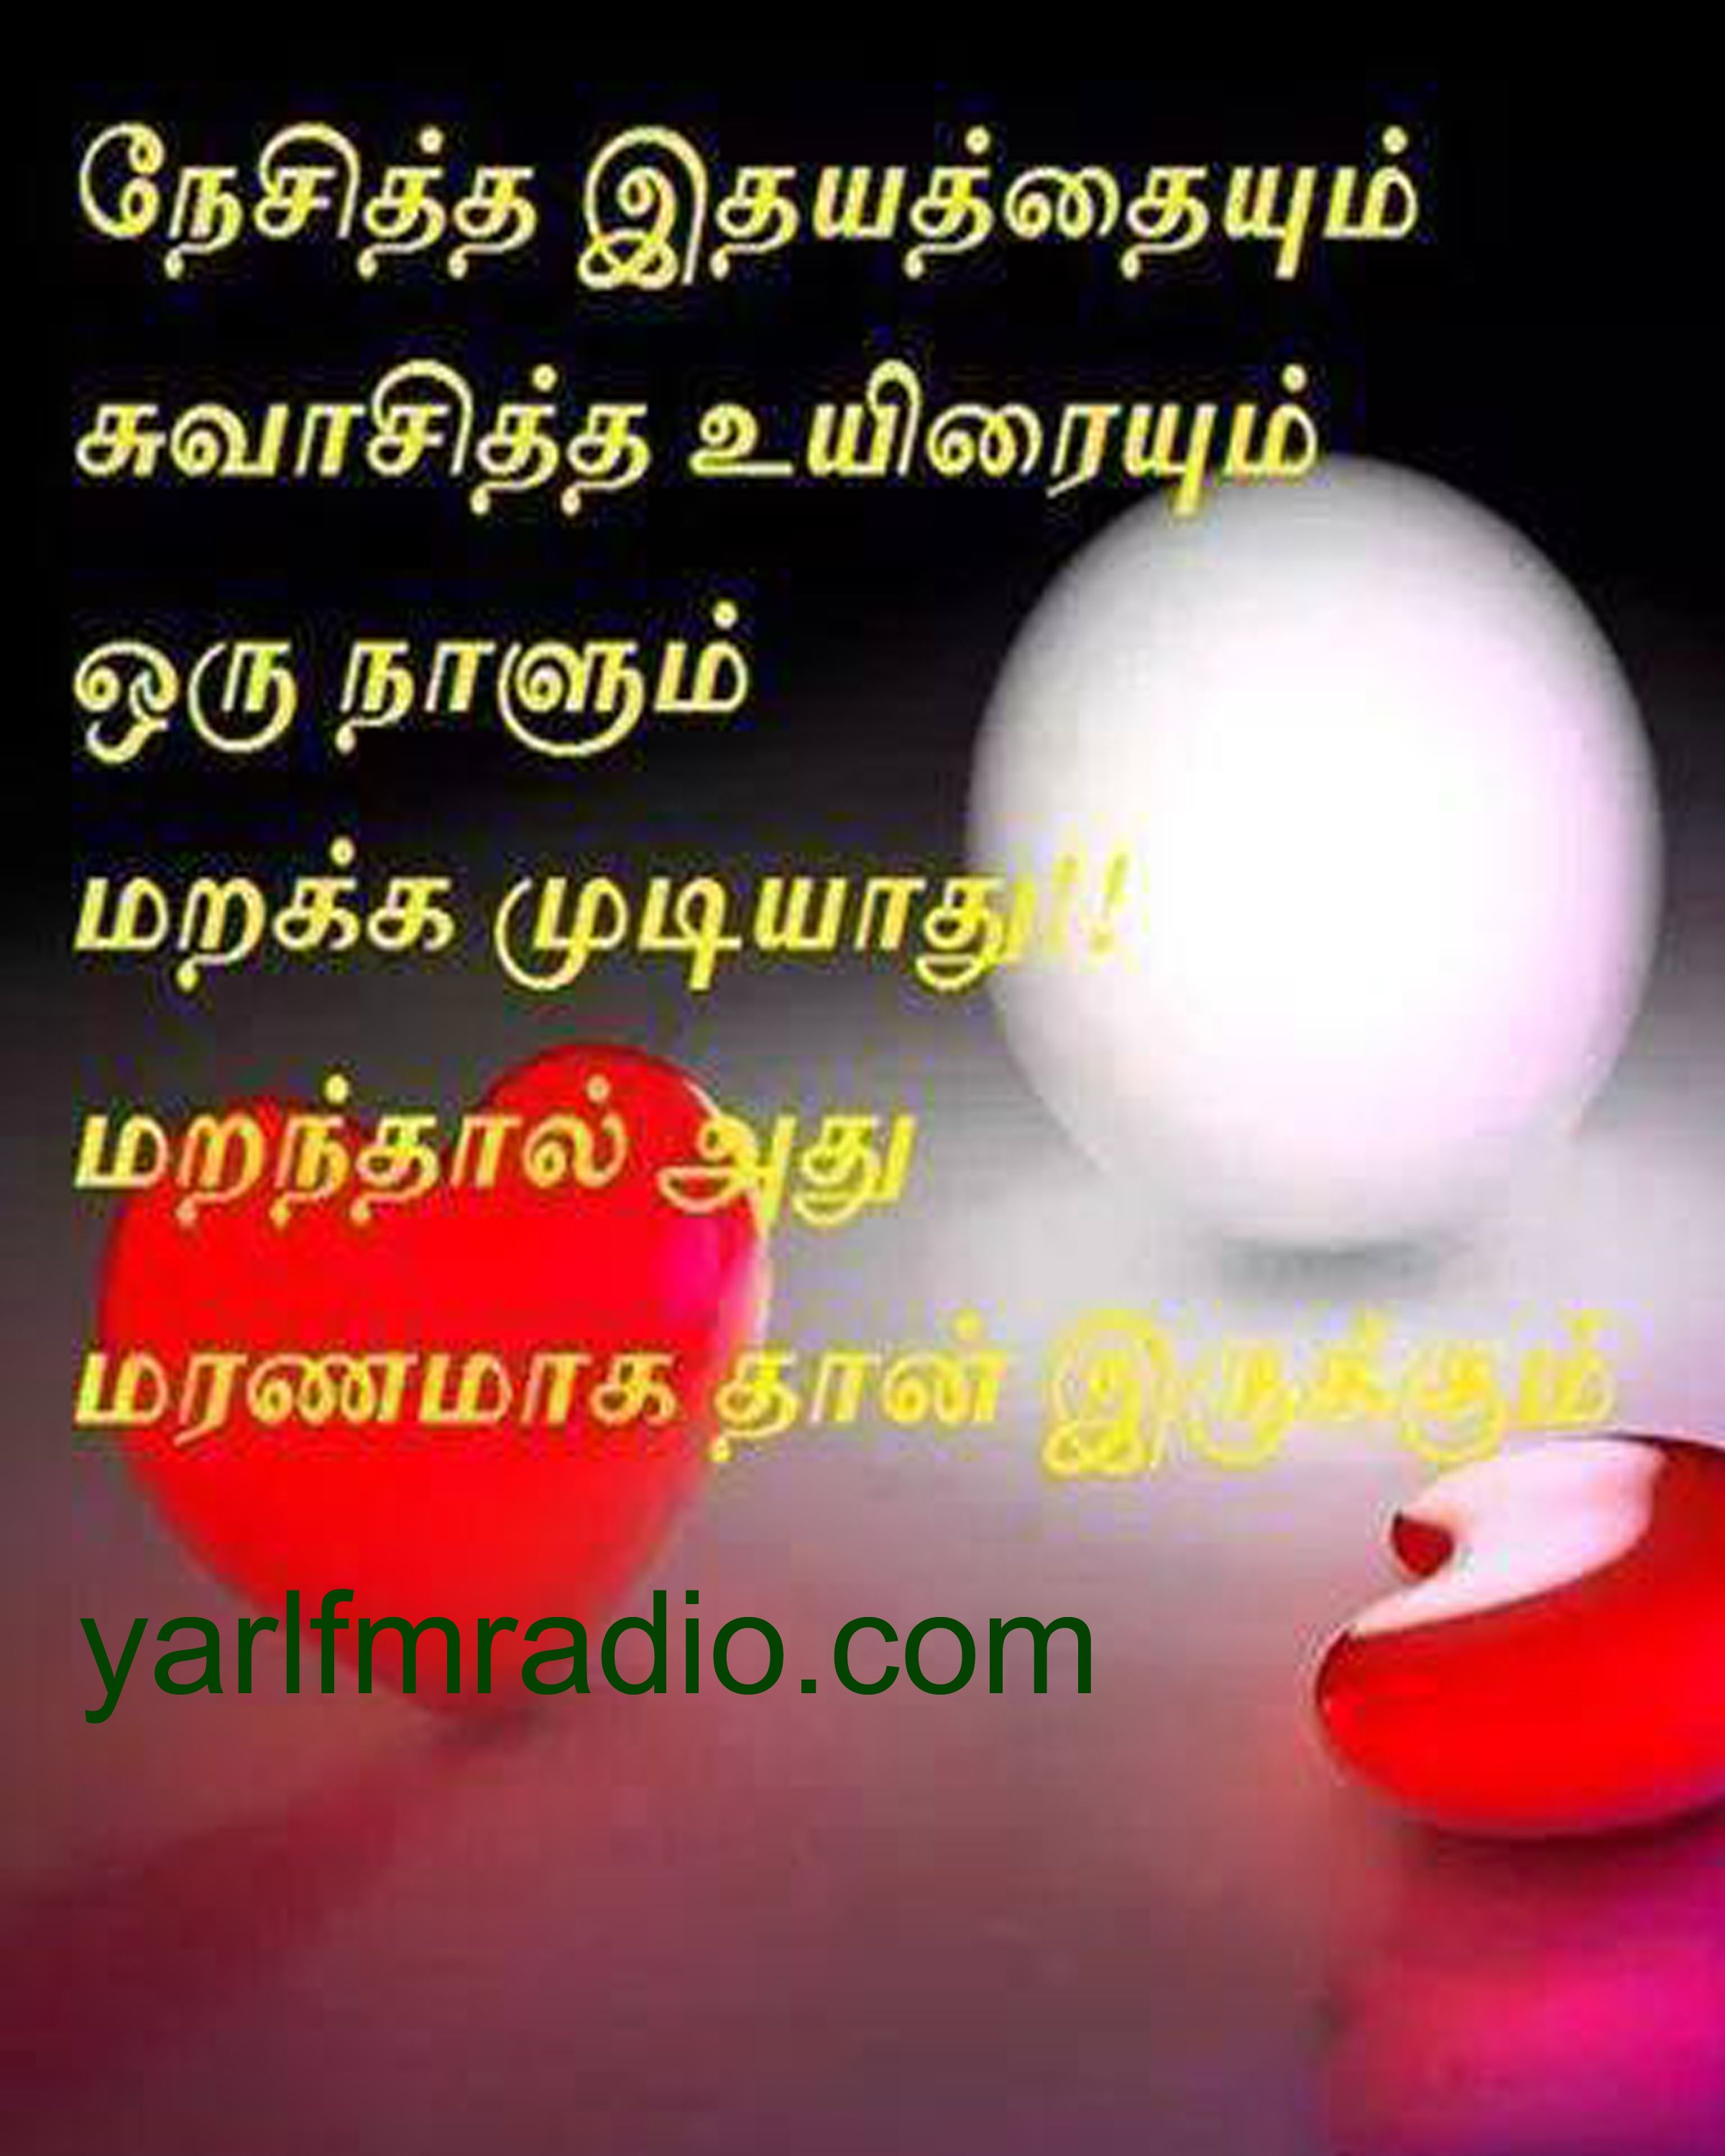 Friendship Tamil Kavithaigal In Tamil Language